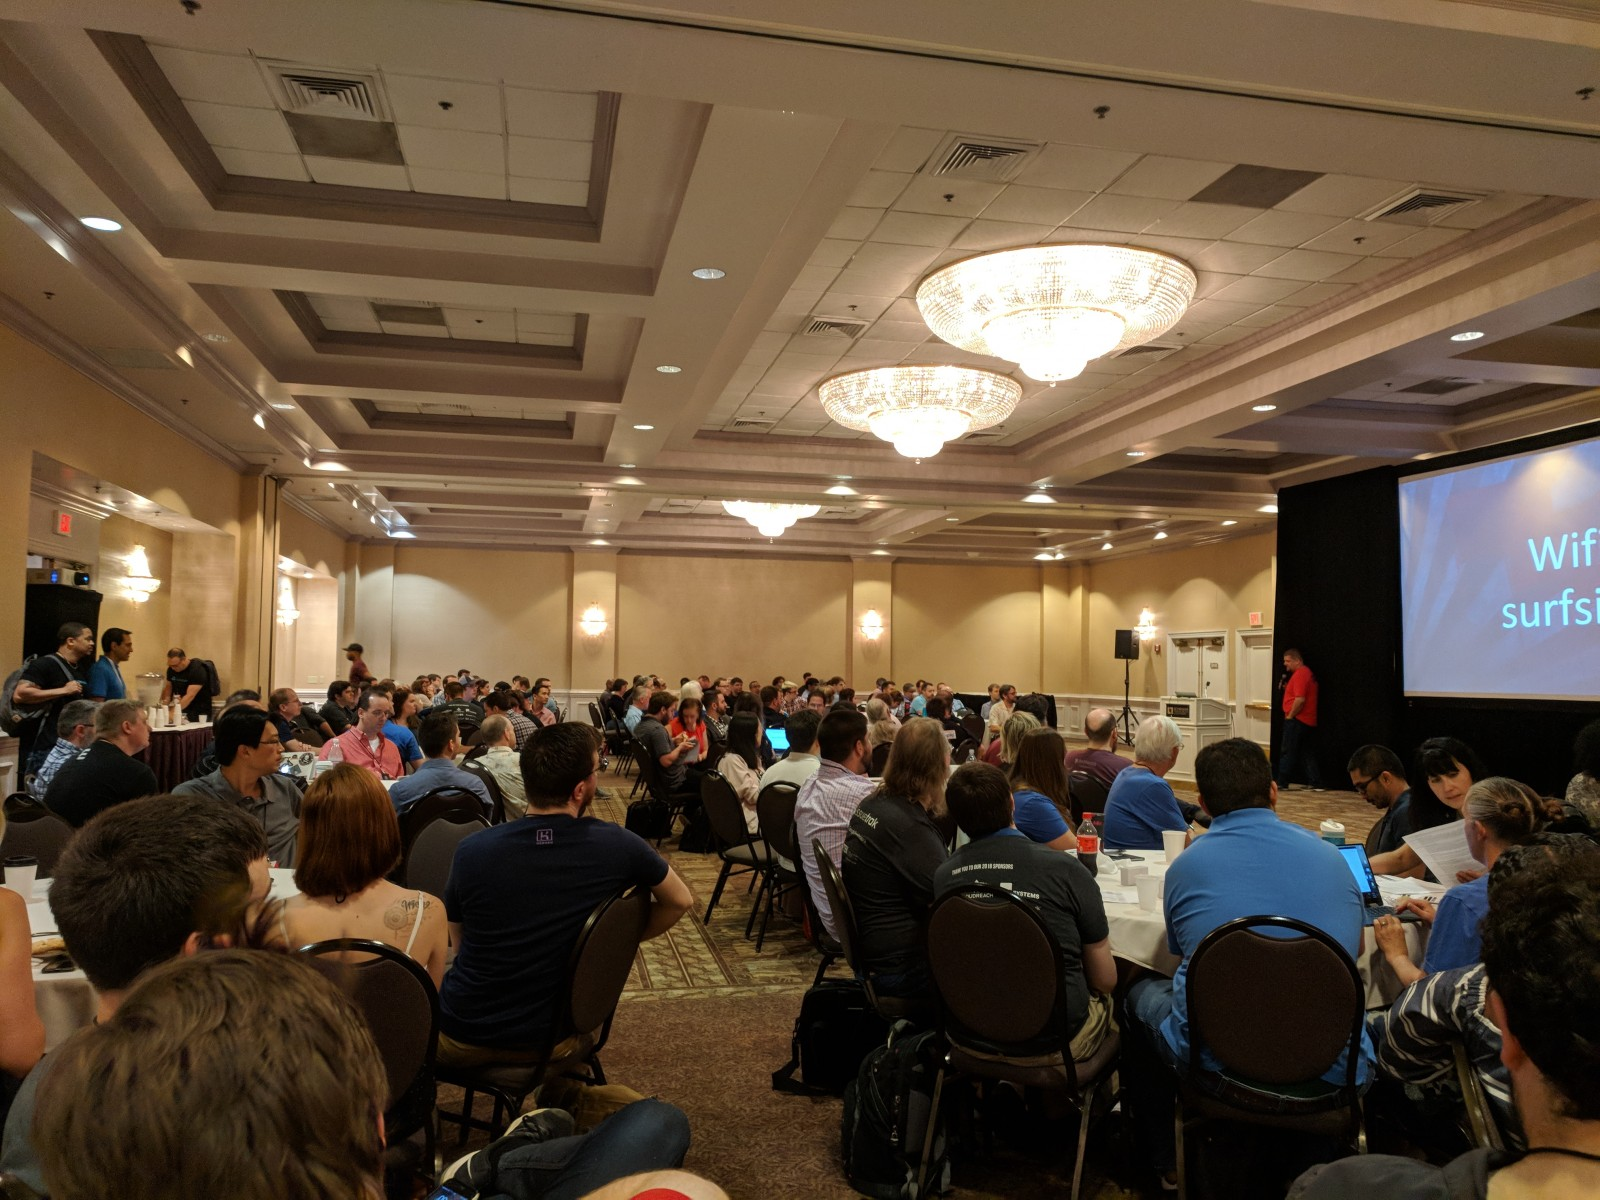 RevolutionConf 2018 opening remarks being held in the Atlantic Ball Room